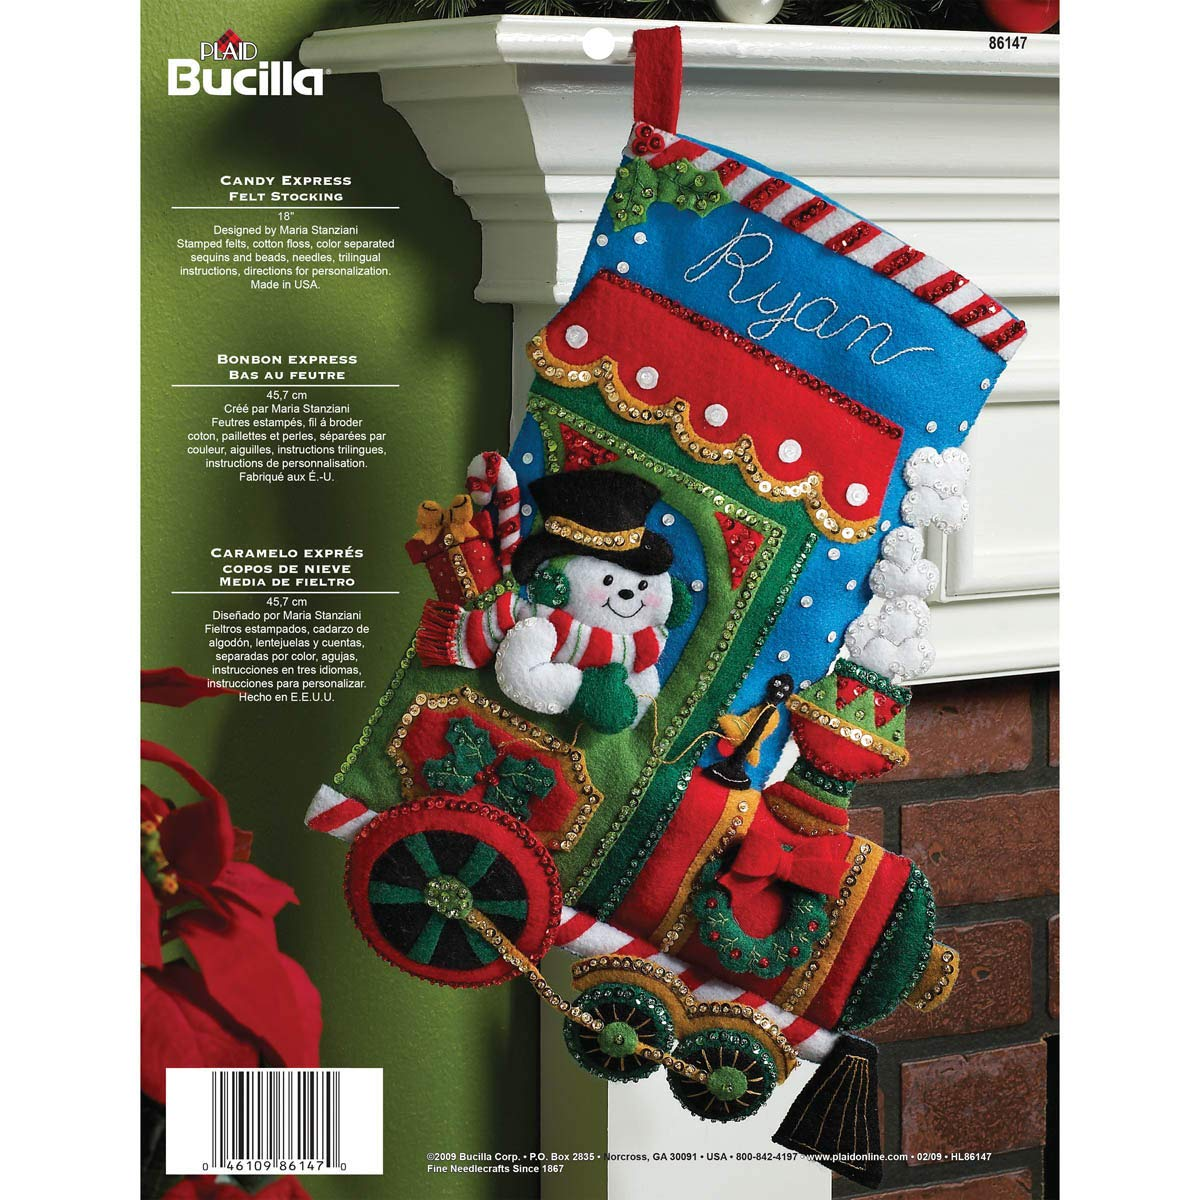 Bucilla 18-Inch Christmas Stocking Felt Applique Kit, 86147 Candy Express product image